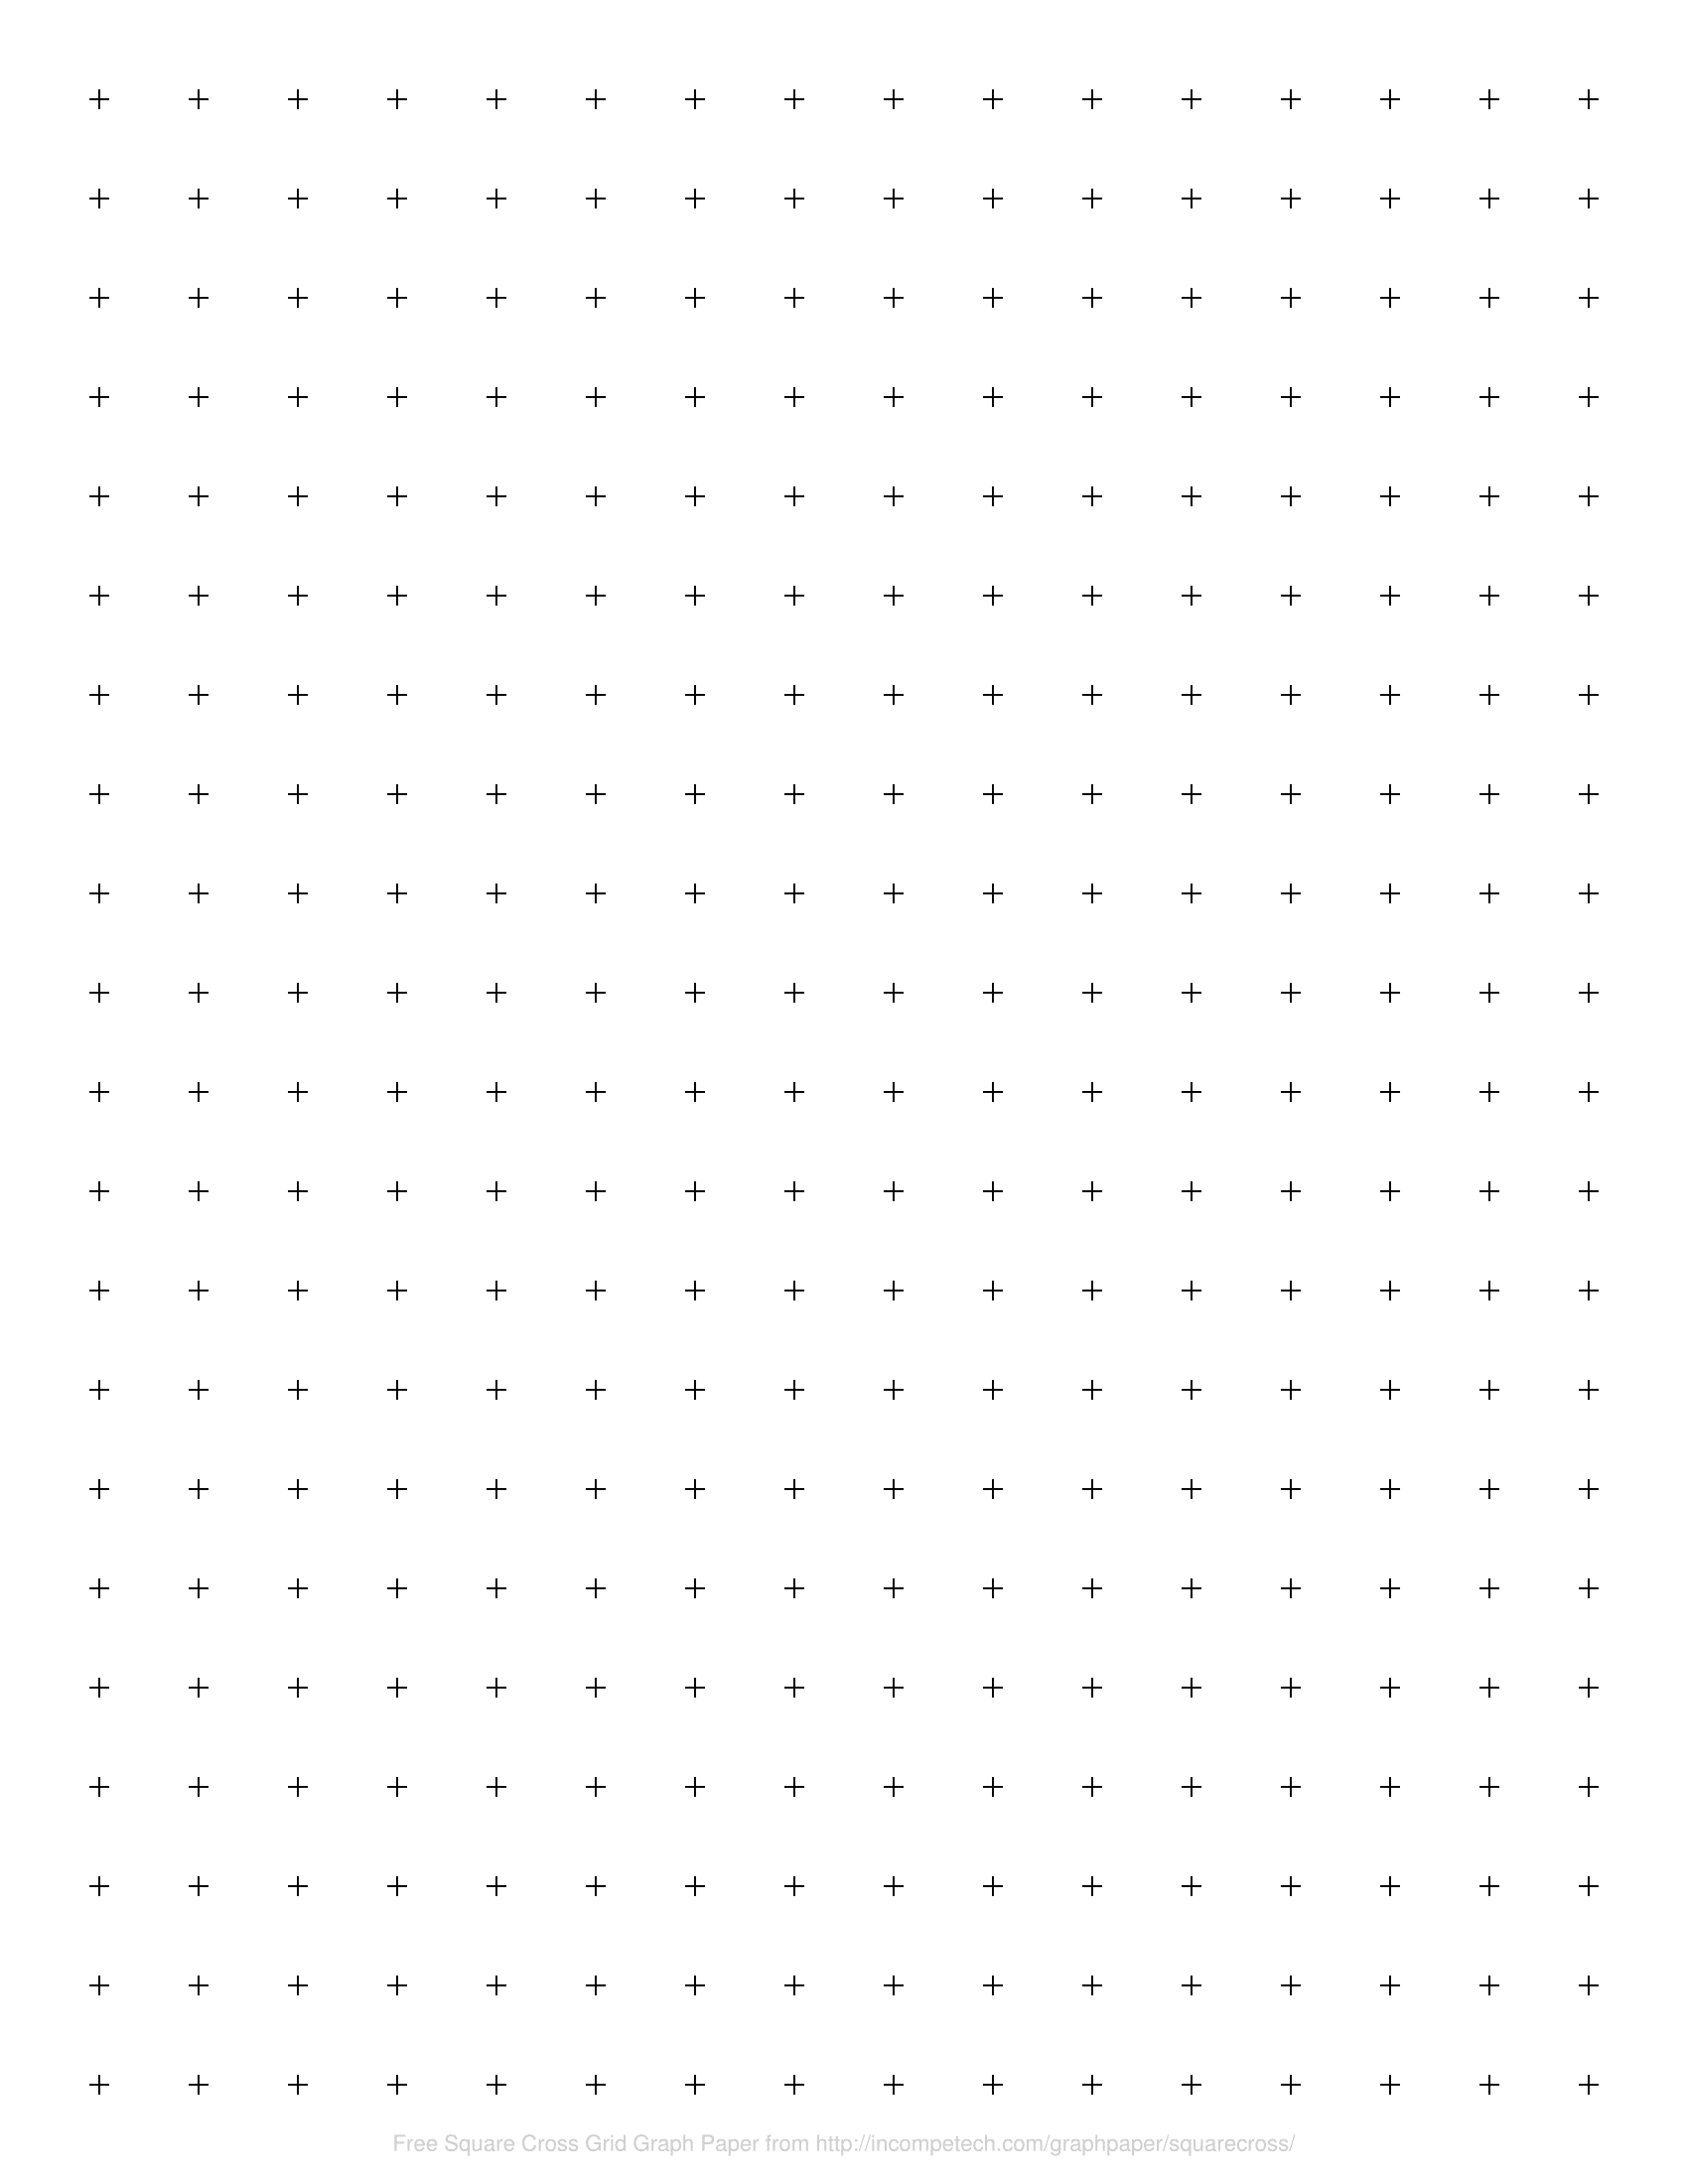 free online graph paper square cross grid